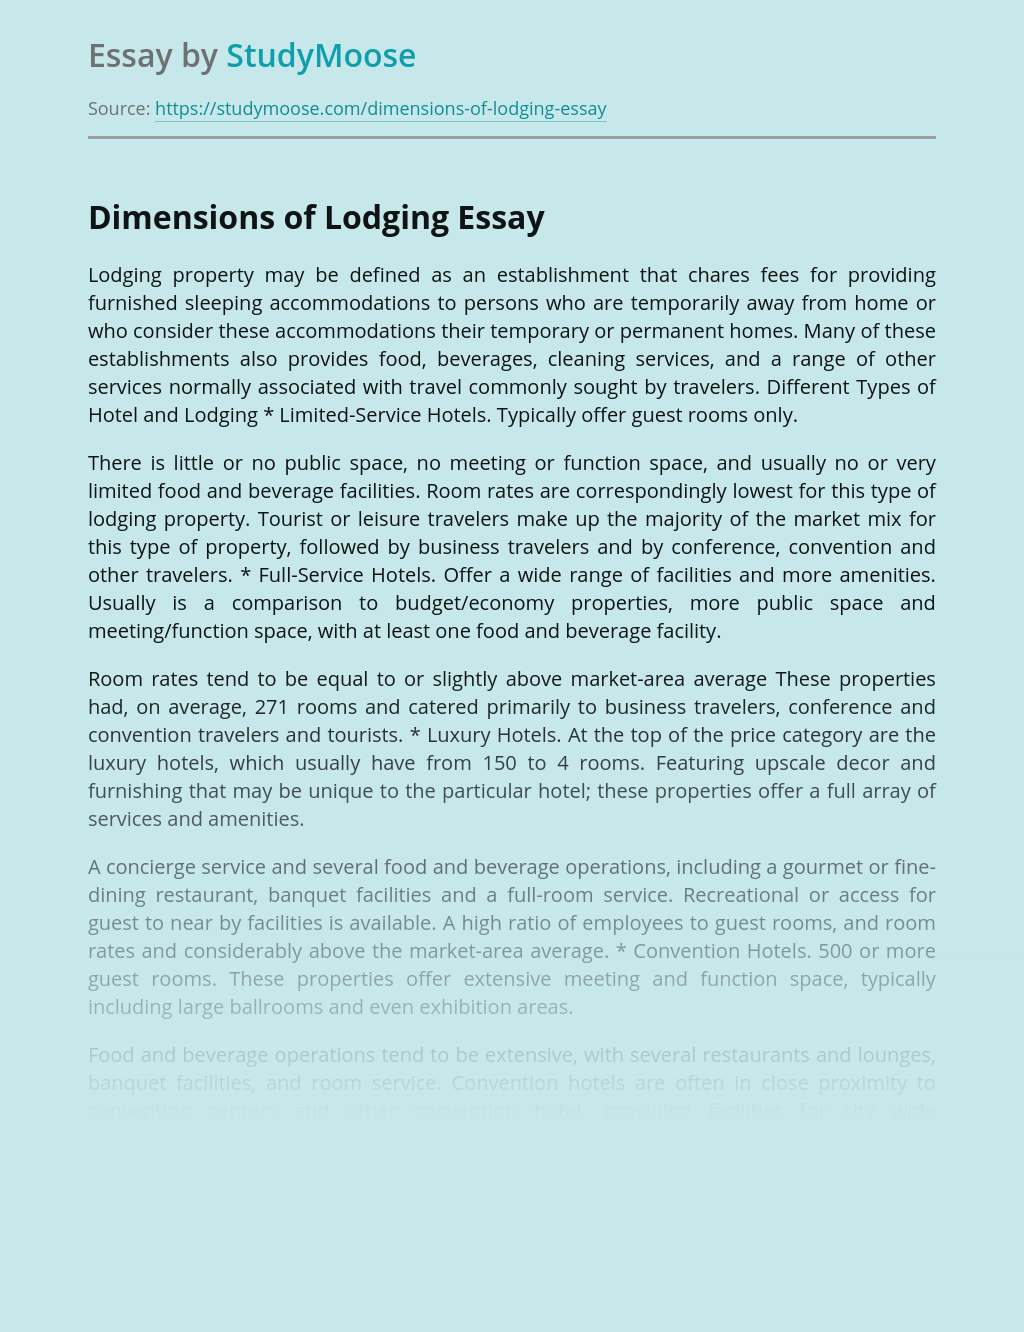 Dimensions of Lodging